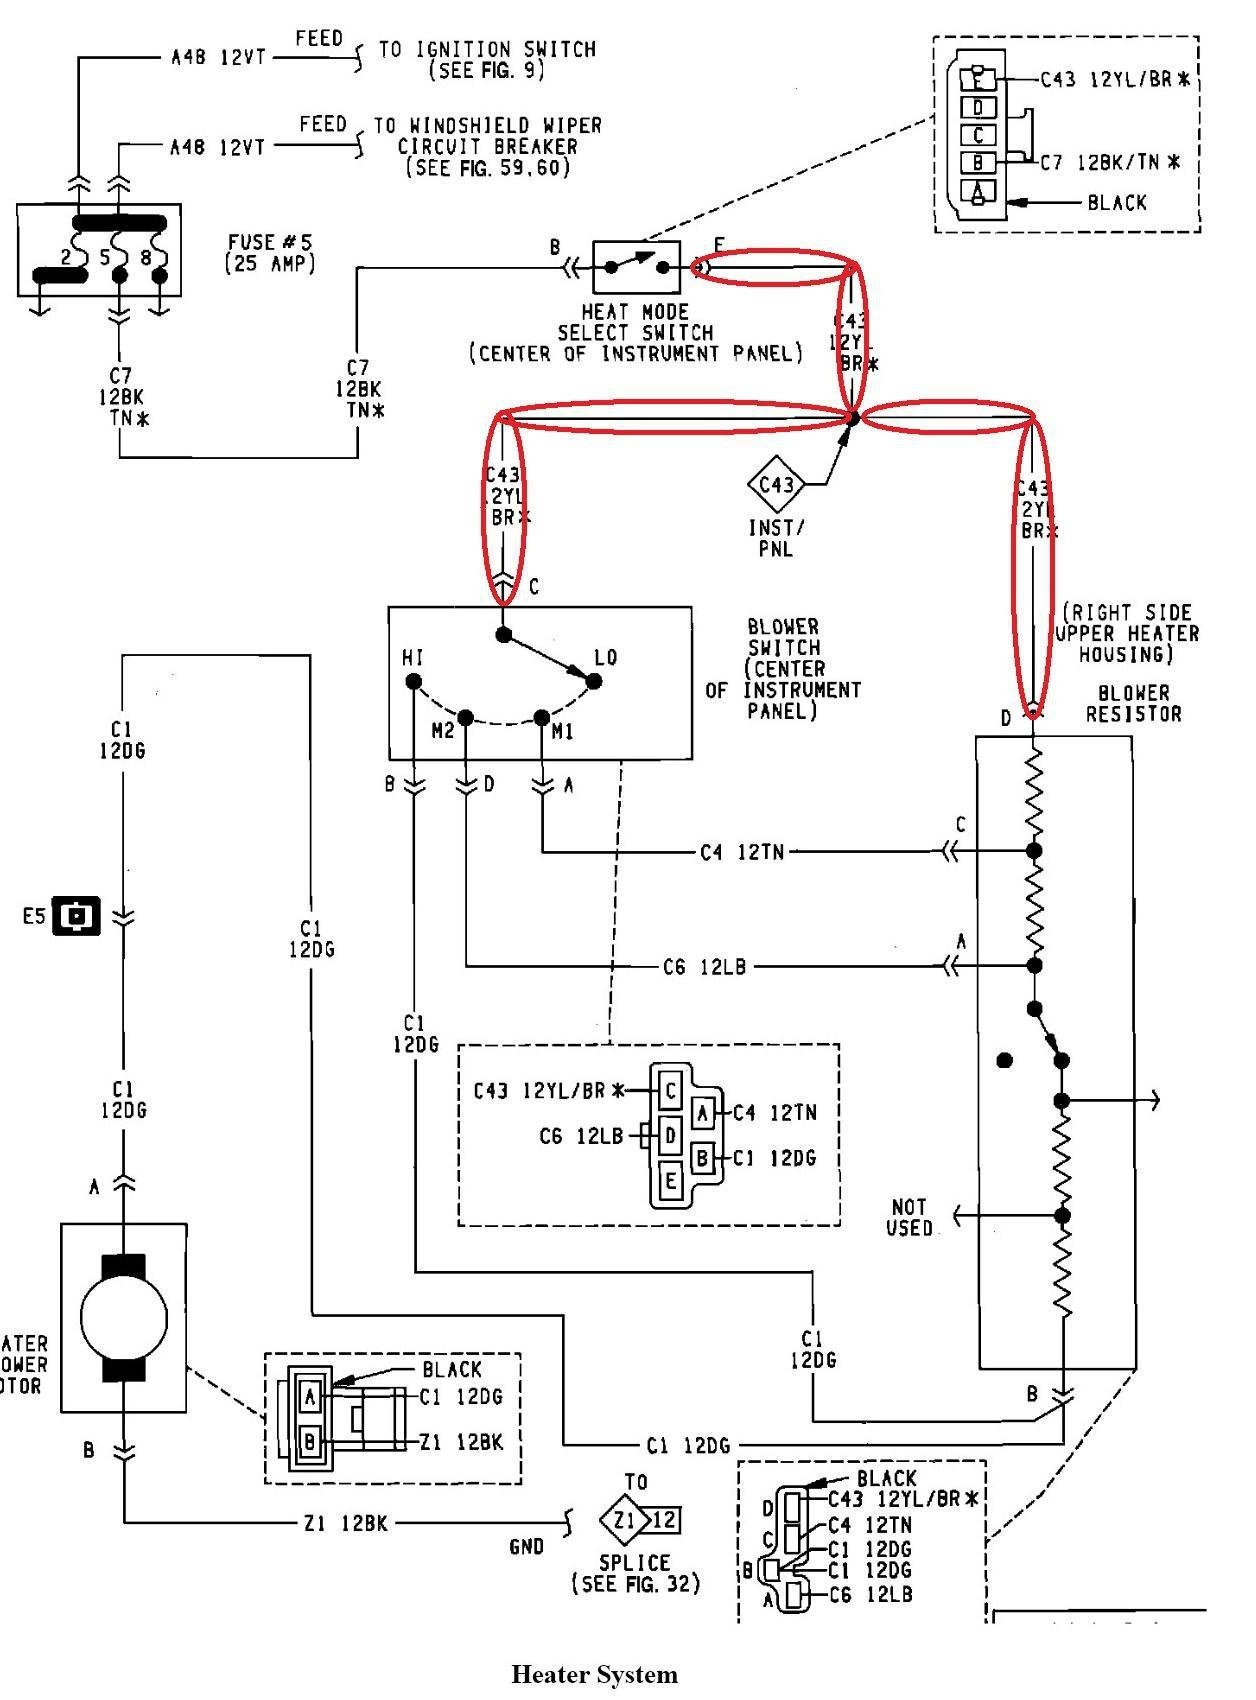 hight resolution of ezgo gas txt wiring diagram wiring diagram centre 1996 ezgo txt gas wiring diagram 1990 ezgo